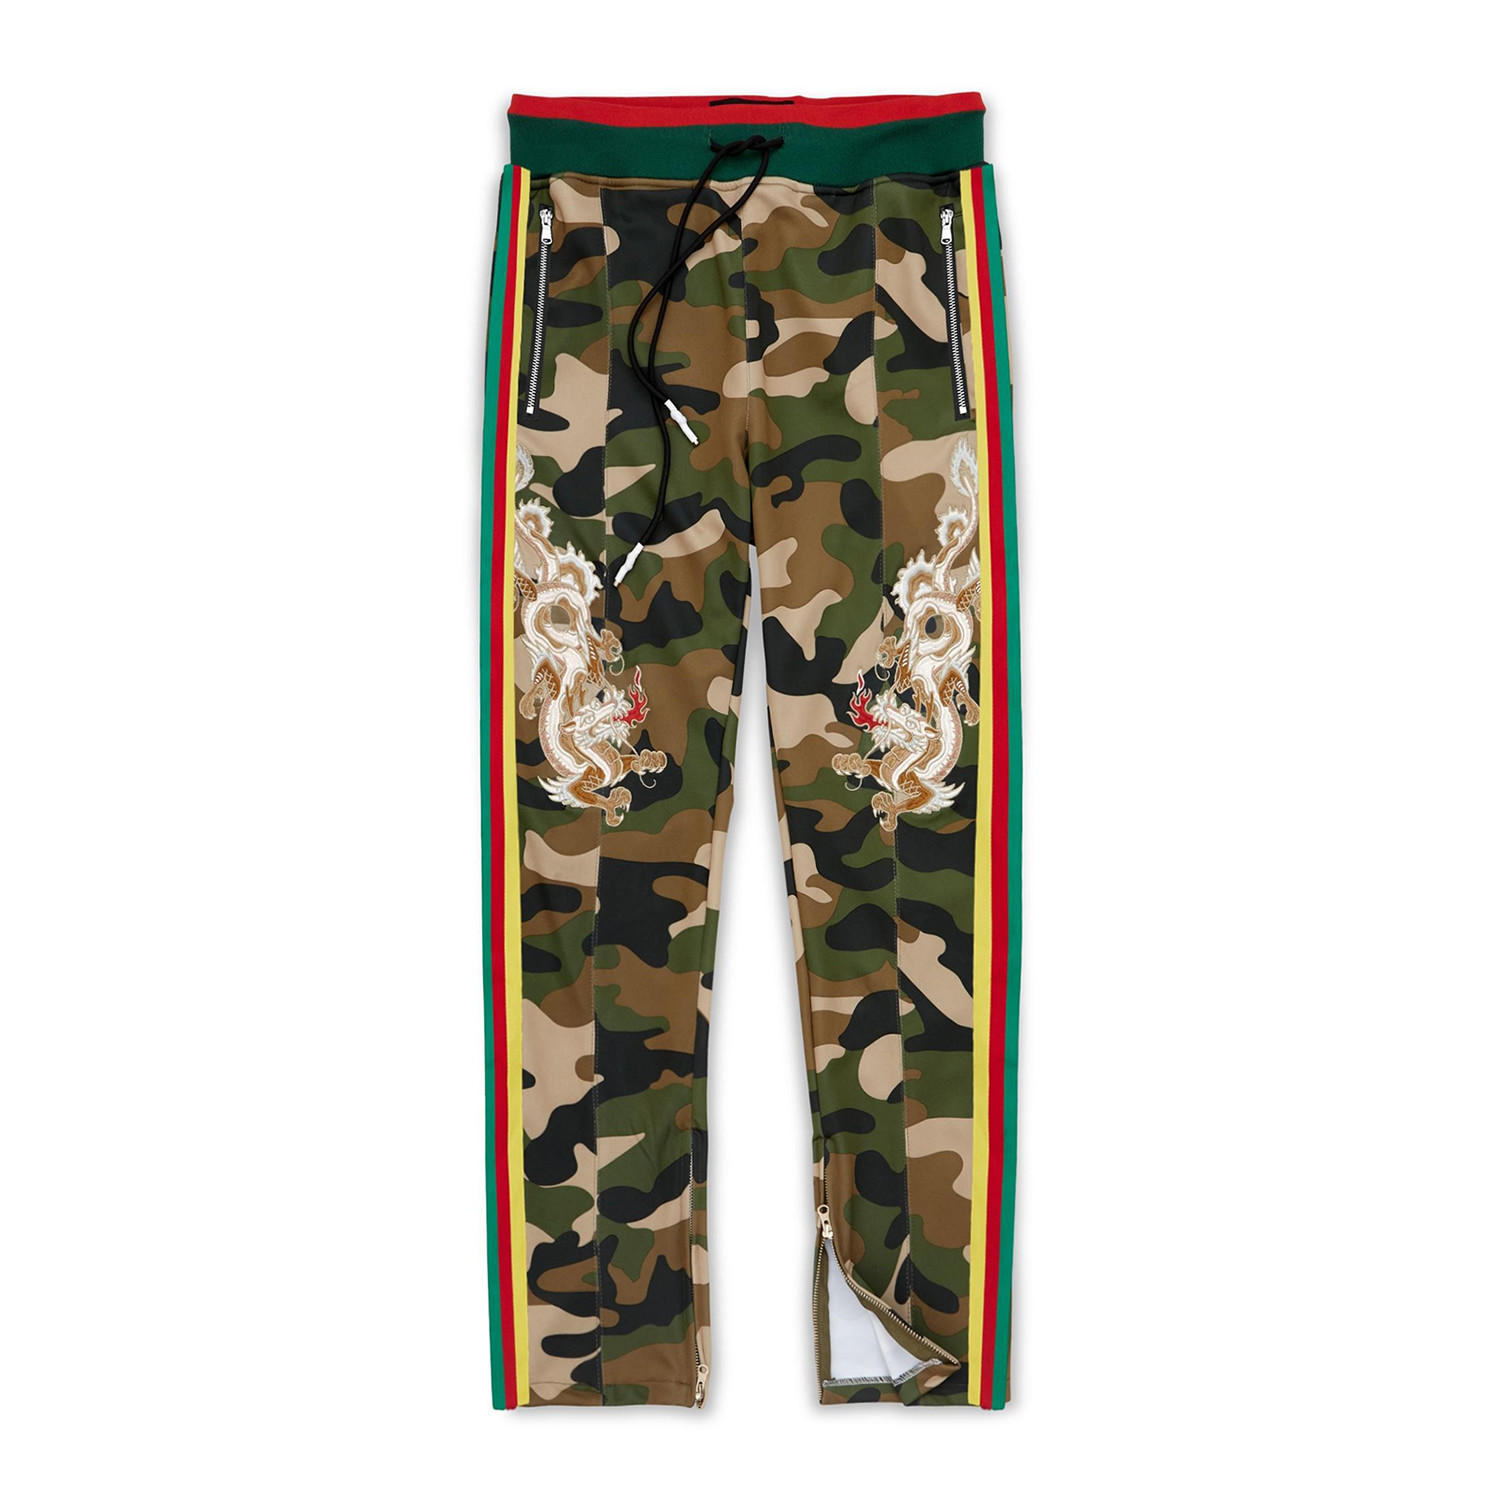 c6cbbf4766d Dragons Camo Track Pants    Camo (M) - CLEARANCE  Casual Apparel ...